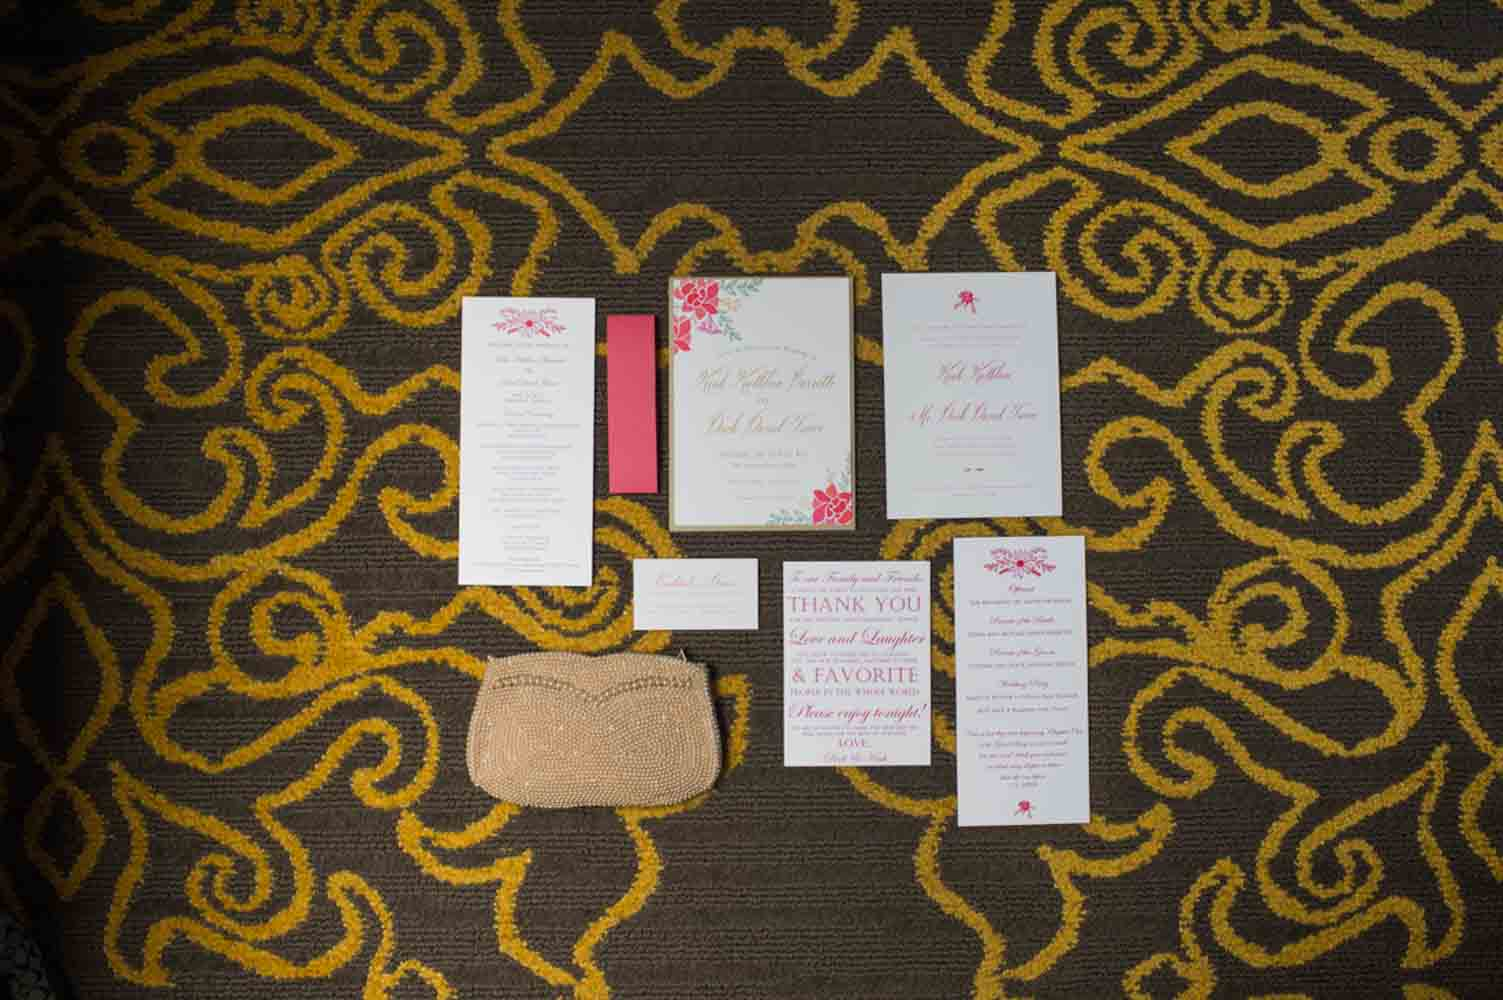 colorful wedding invitations on carpet